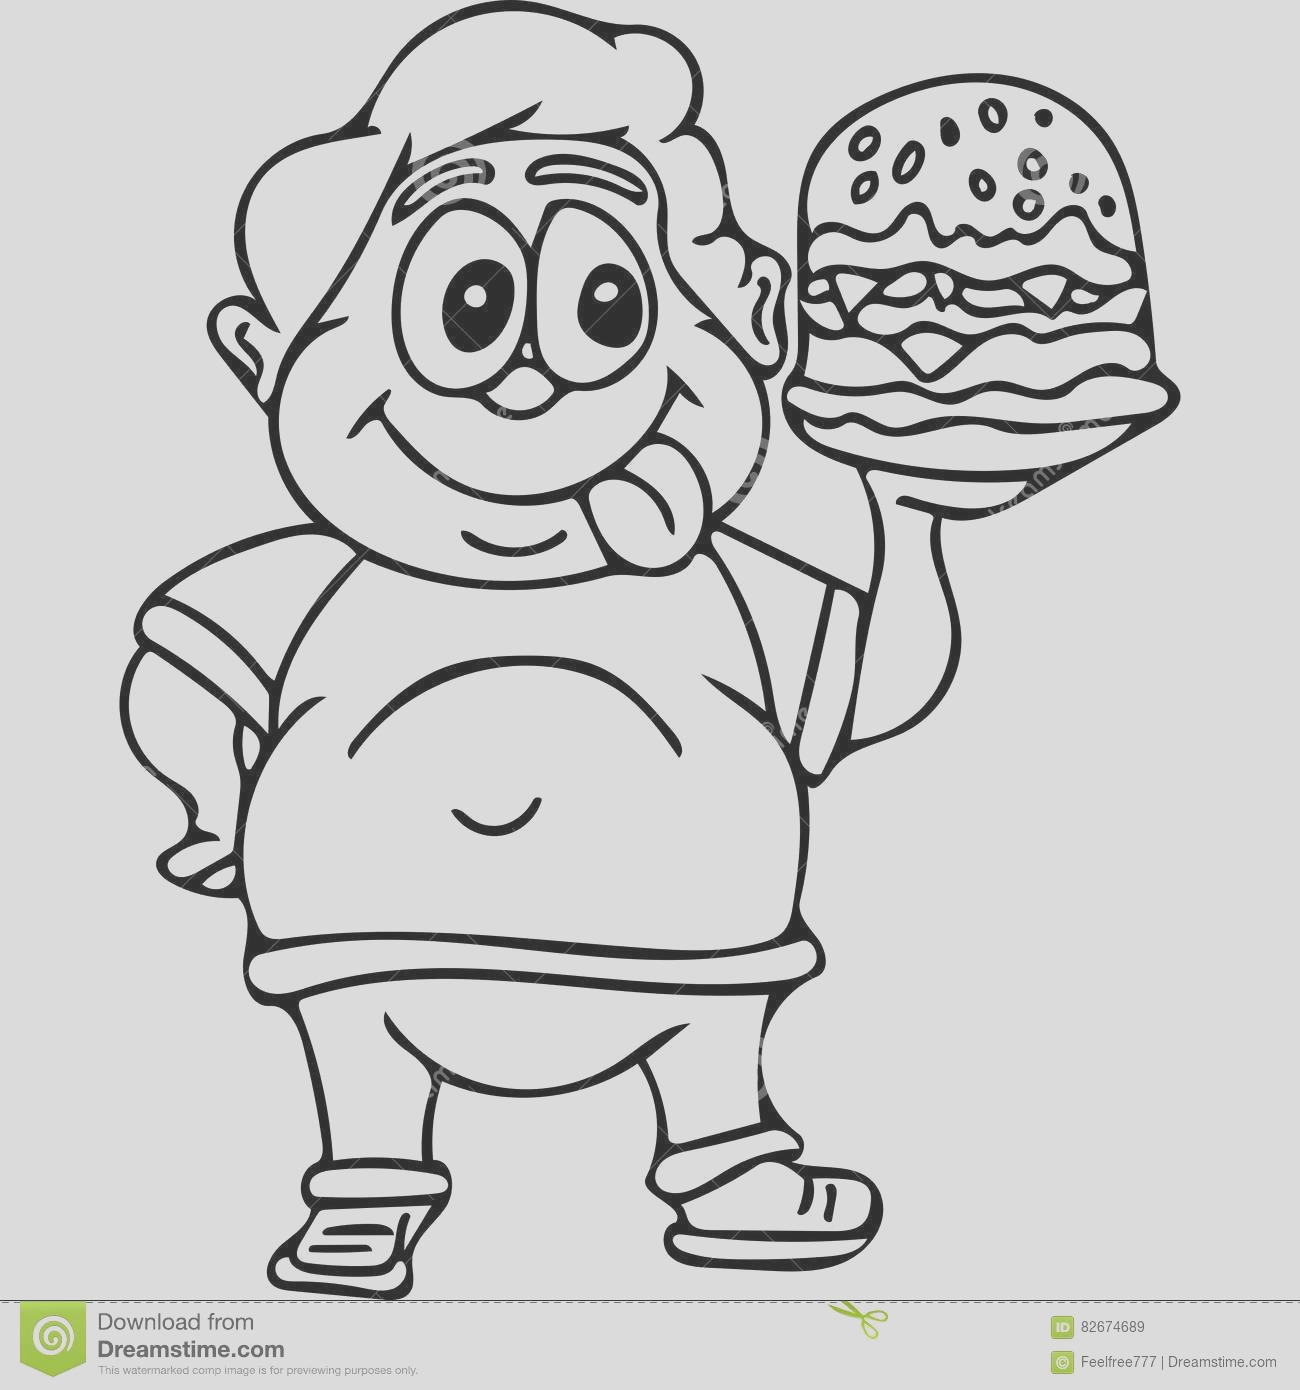 stock illustration fast food kids coloring pages hand drawing illustration you can see some kid eating tasty burger great picture gor all image